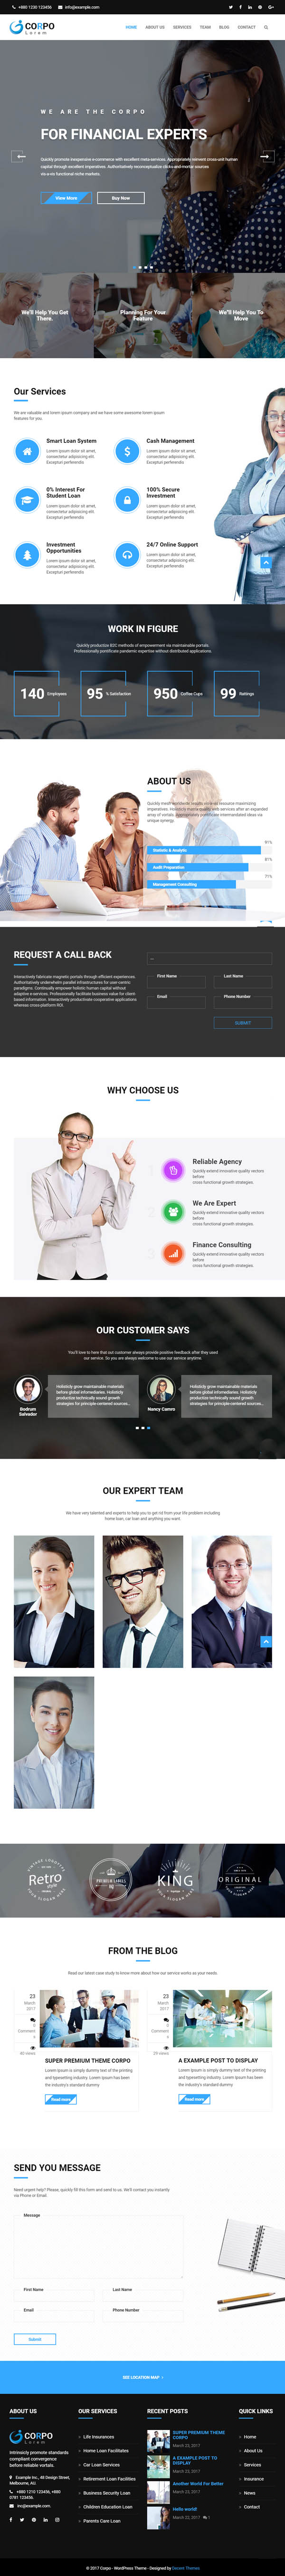 Corpo – Modern Business and Corporate Theme For WordPress